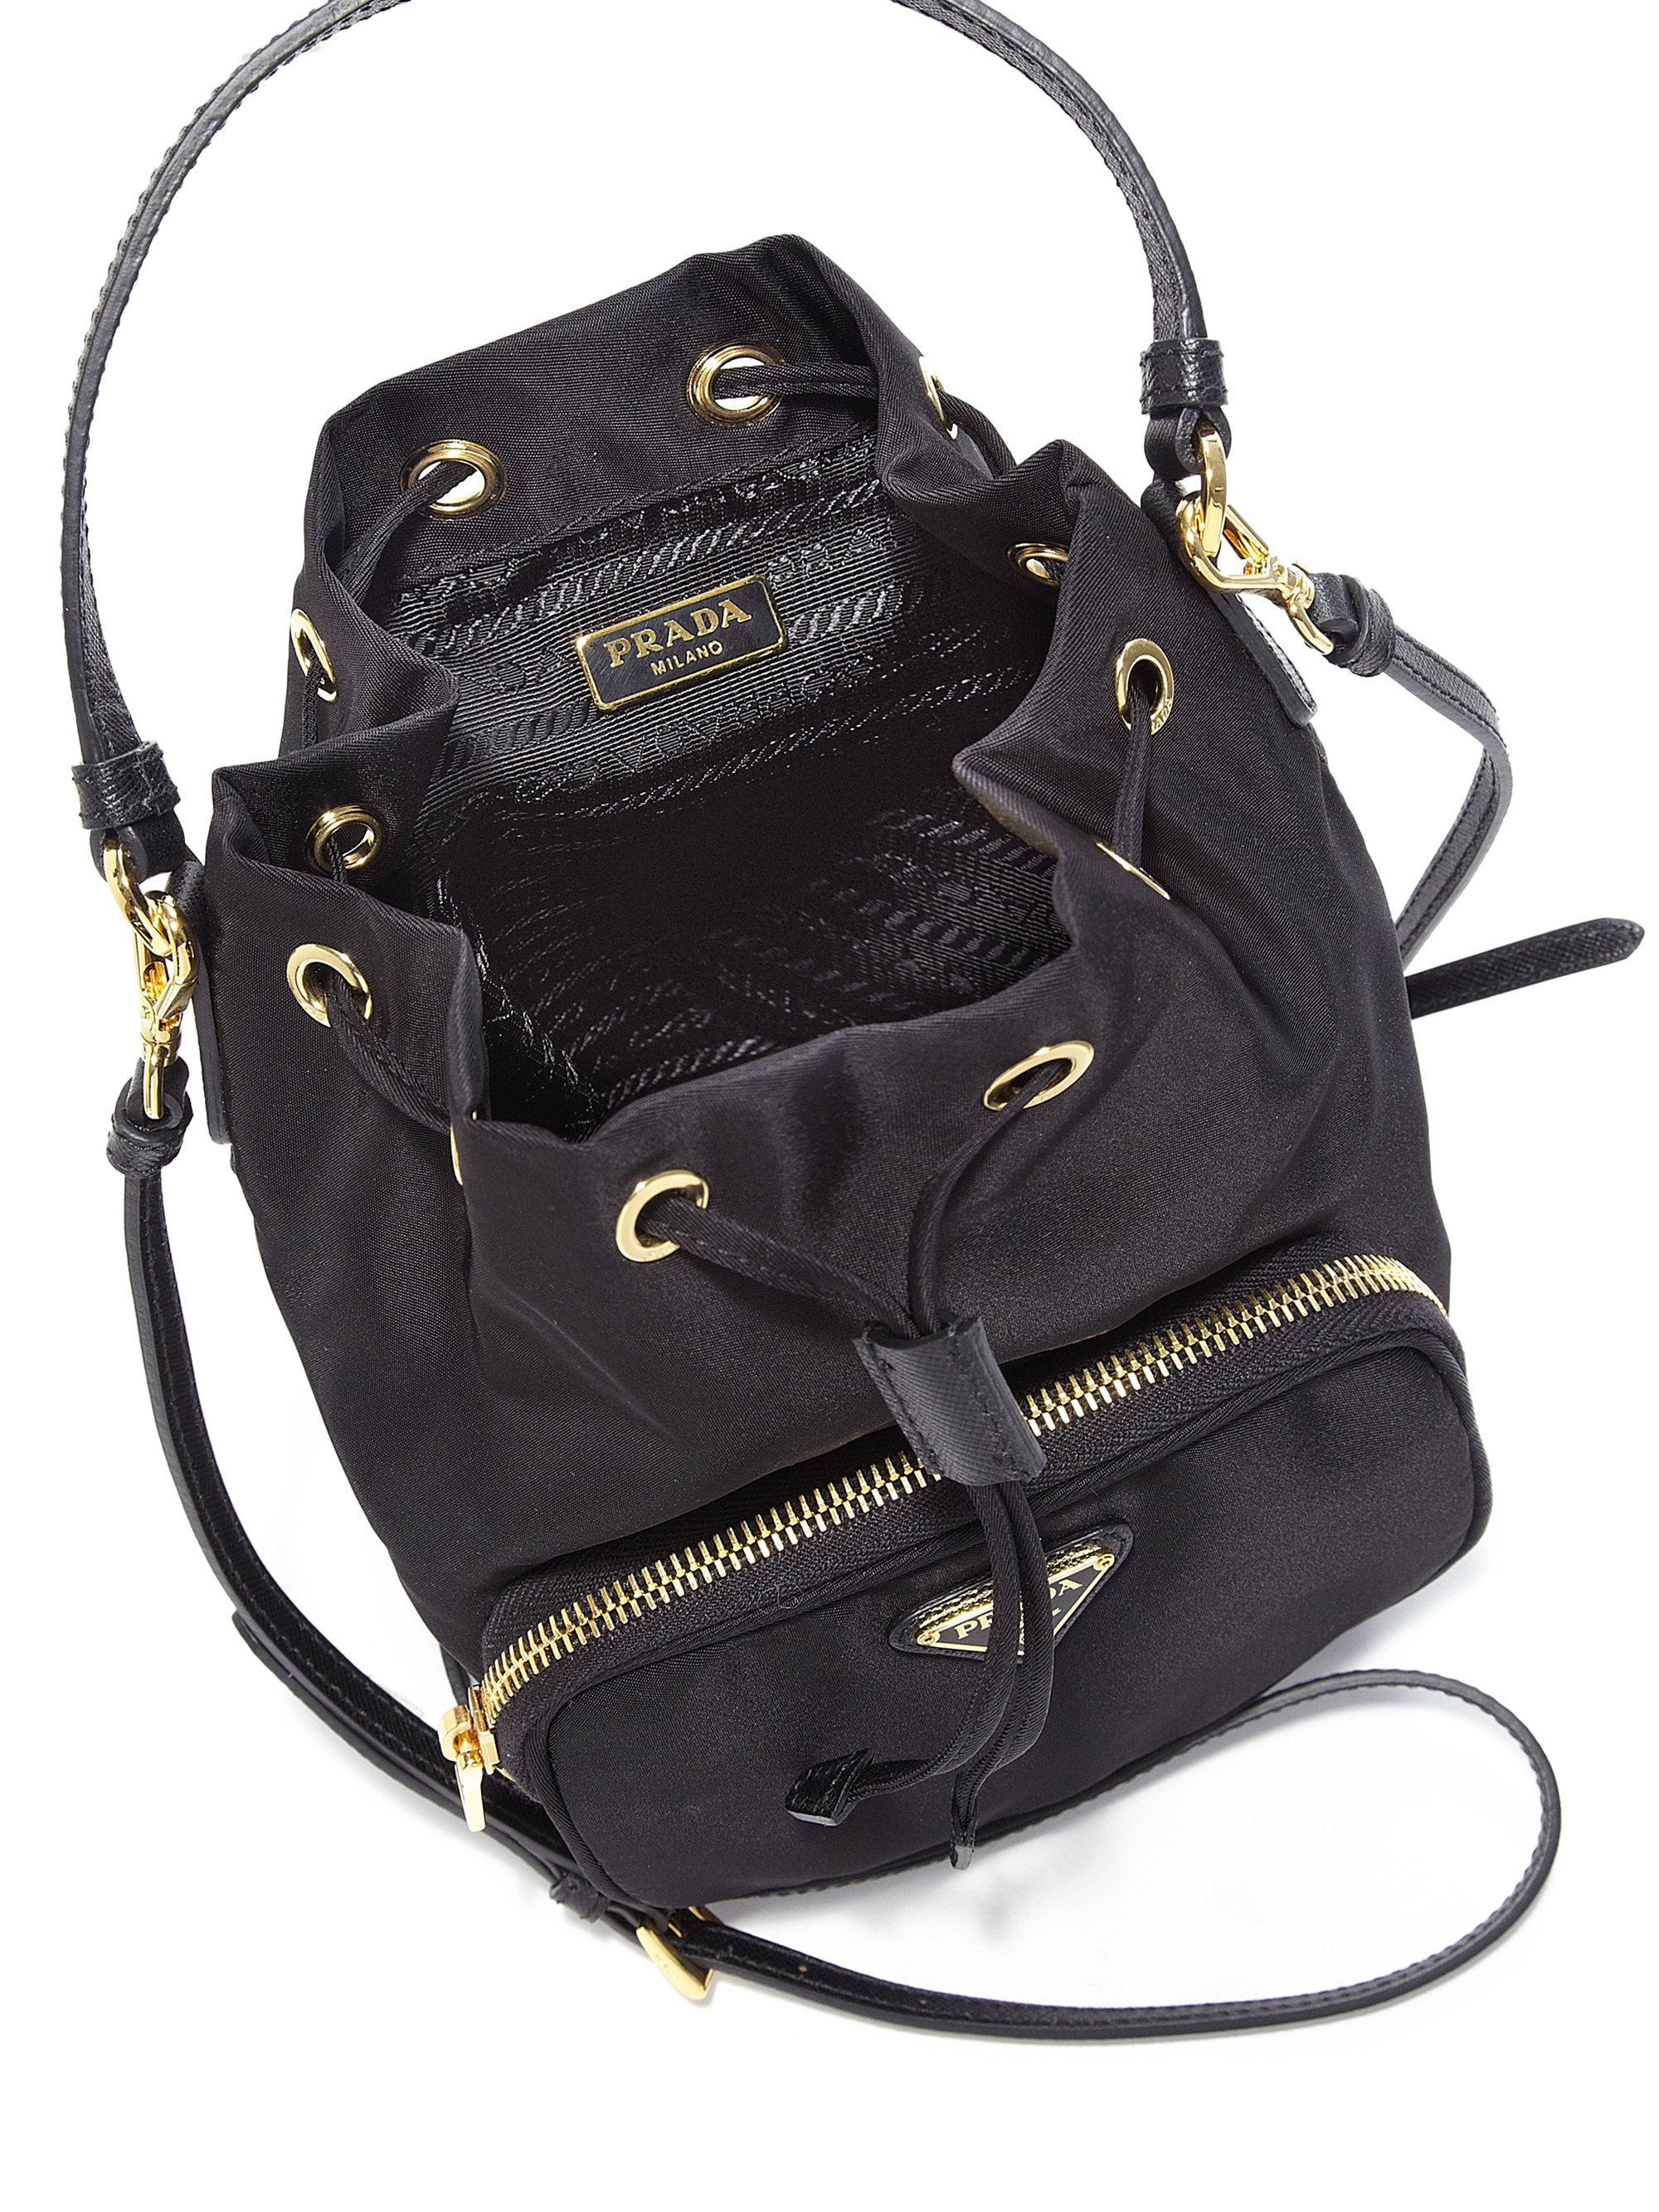 1bfc065f3feef7 Prada Tess Drawstring Nylon Pouch Crossbody Bag in Black - Lyst